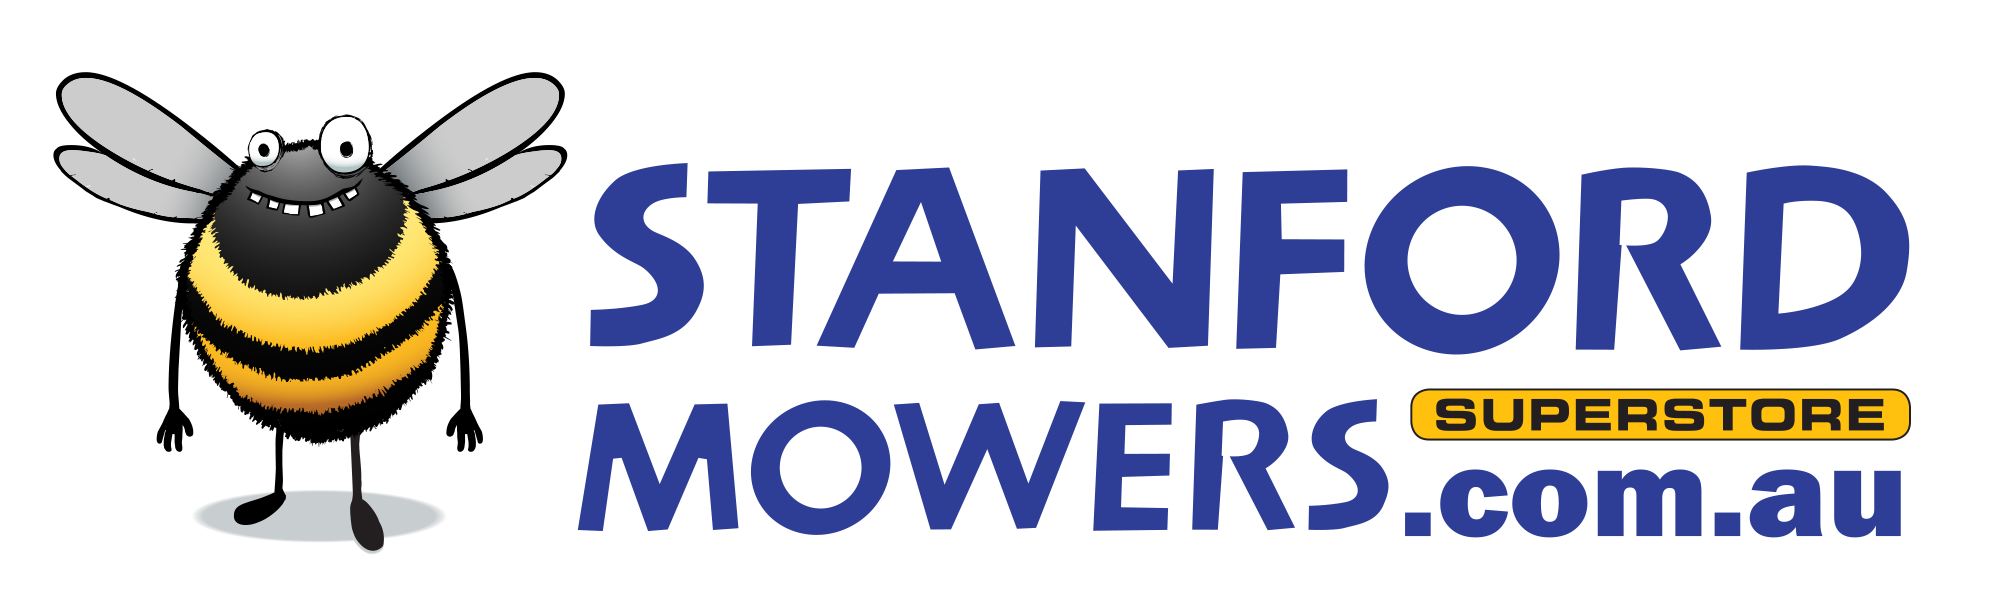 Stanford Mowers Sas Largest Range Of Lawnmowers Ride Ons Rear Engine Riding Mower On Honda Parts Diagram